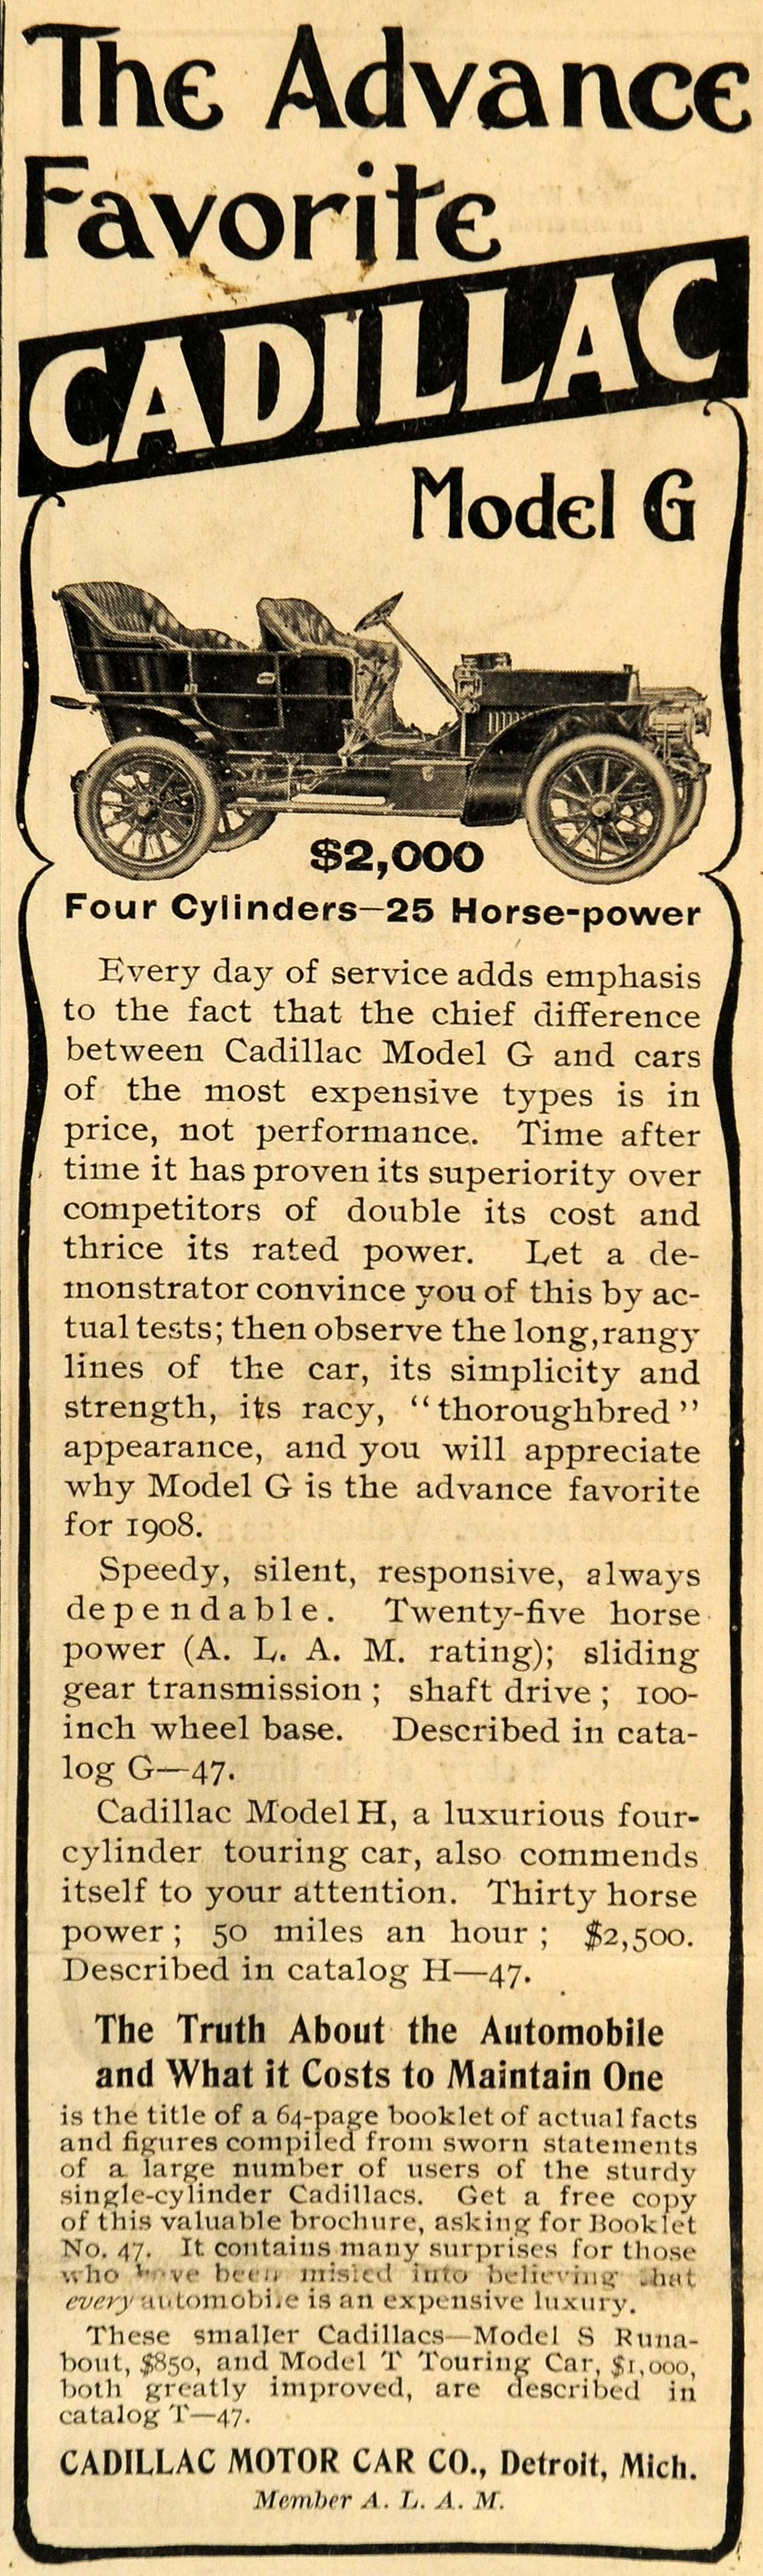 1907 Ad Cadillac Motor Car Co. Model G Car Automobile - ORIGINAL SCA2